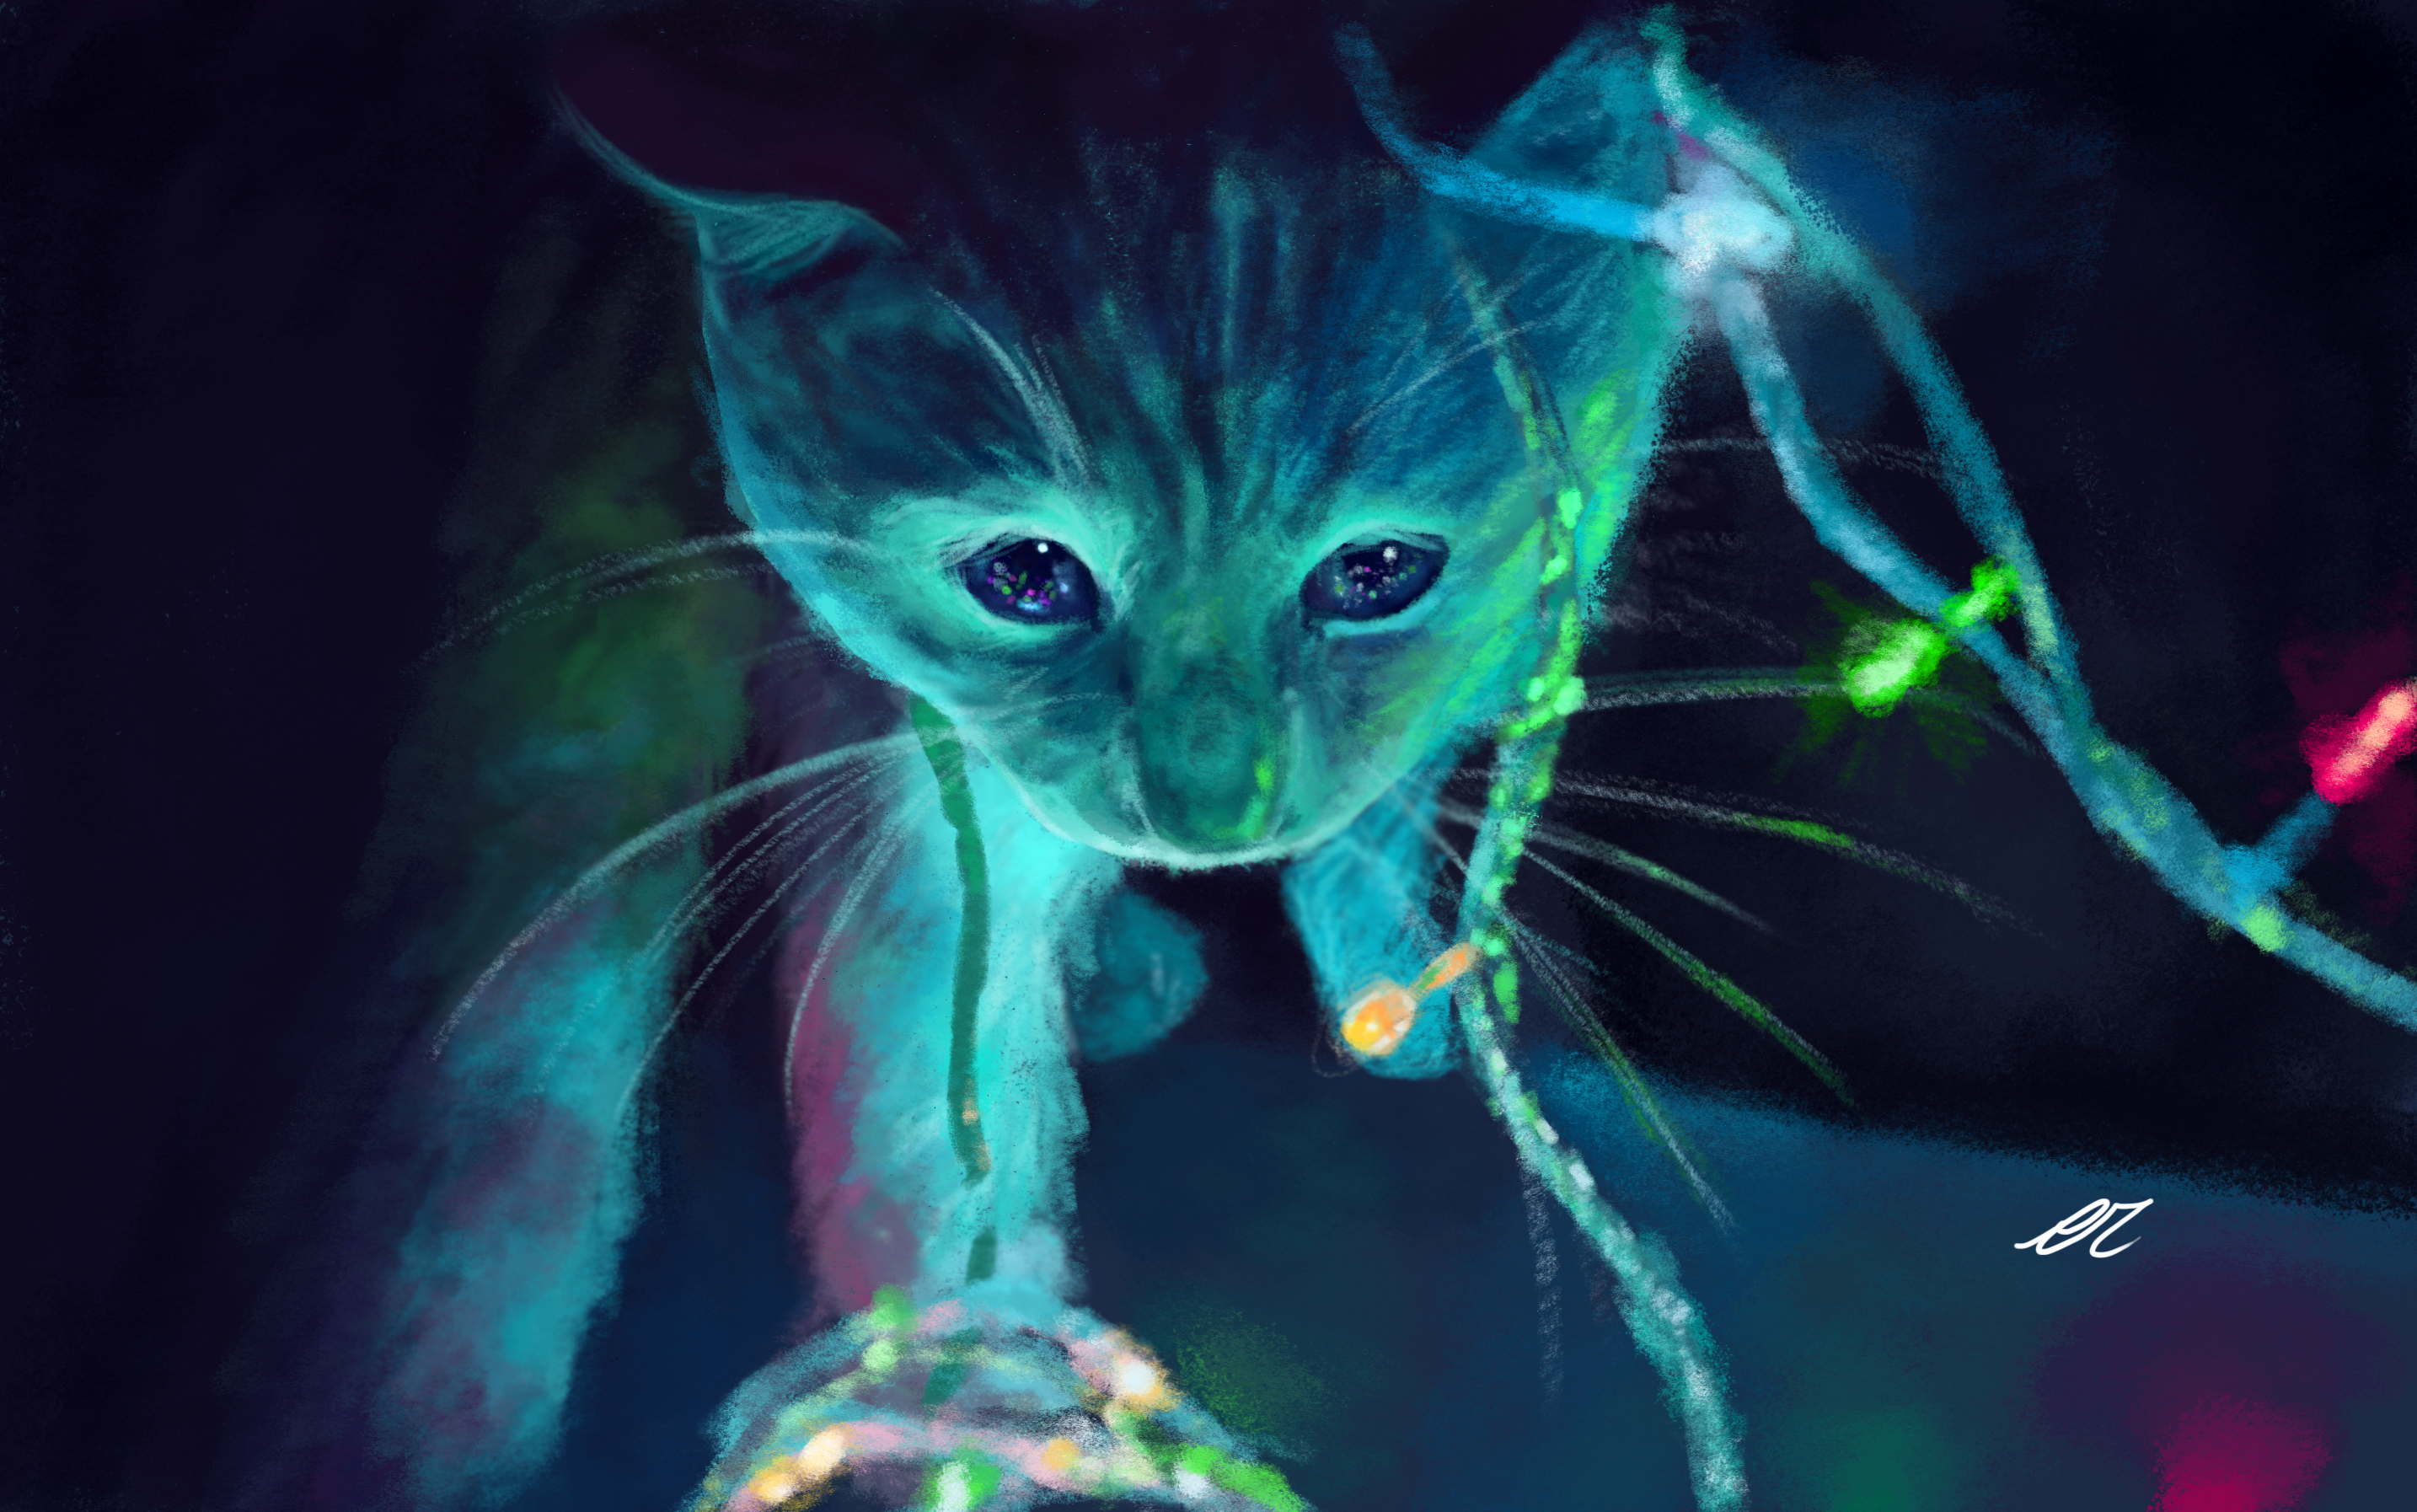 Neon Cat Artwork Hd Artist 4k Wallpapers Images Backgrounds